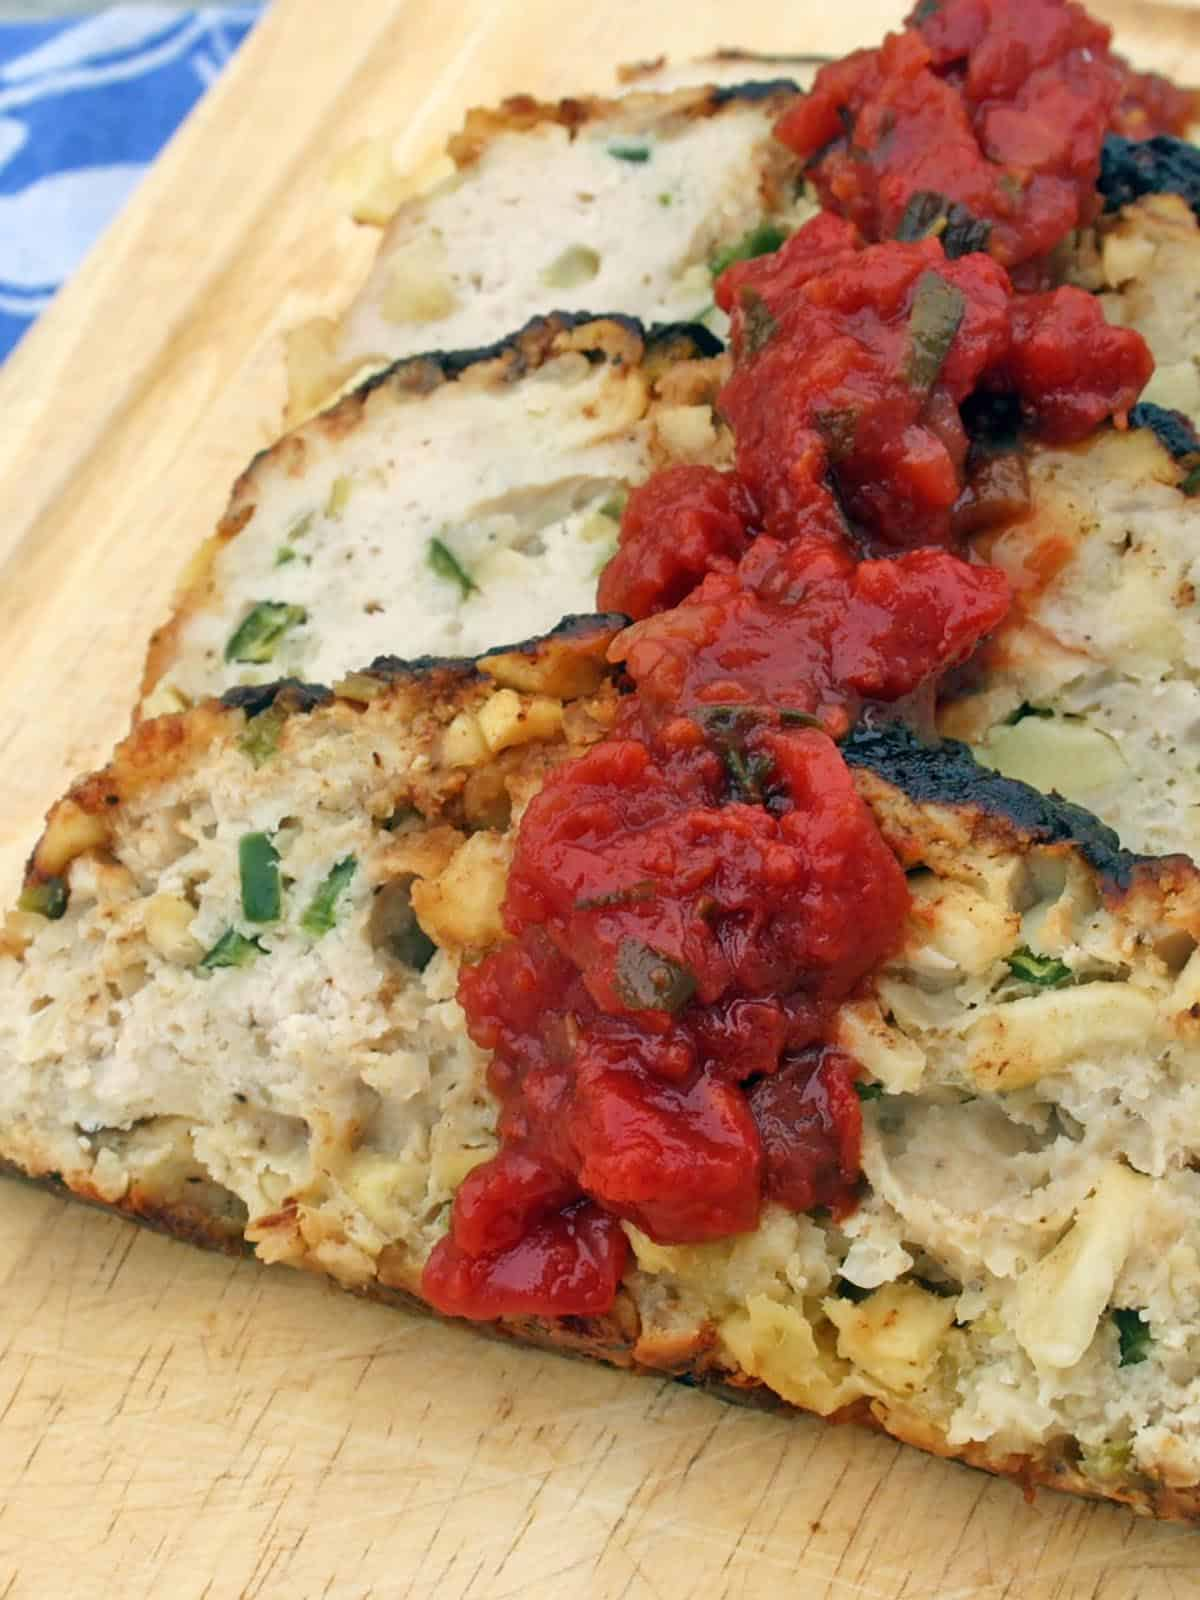 Chicken Apple Meatloaf cut into slices on a wooden cutting board